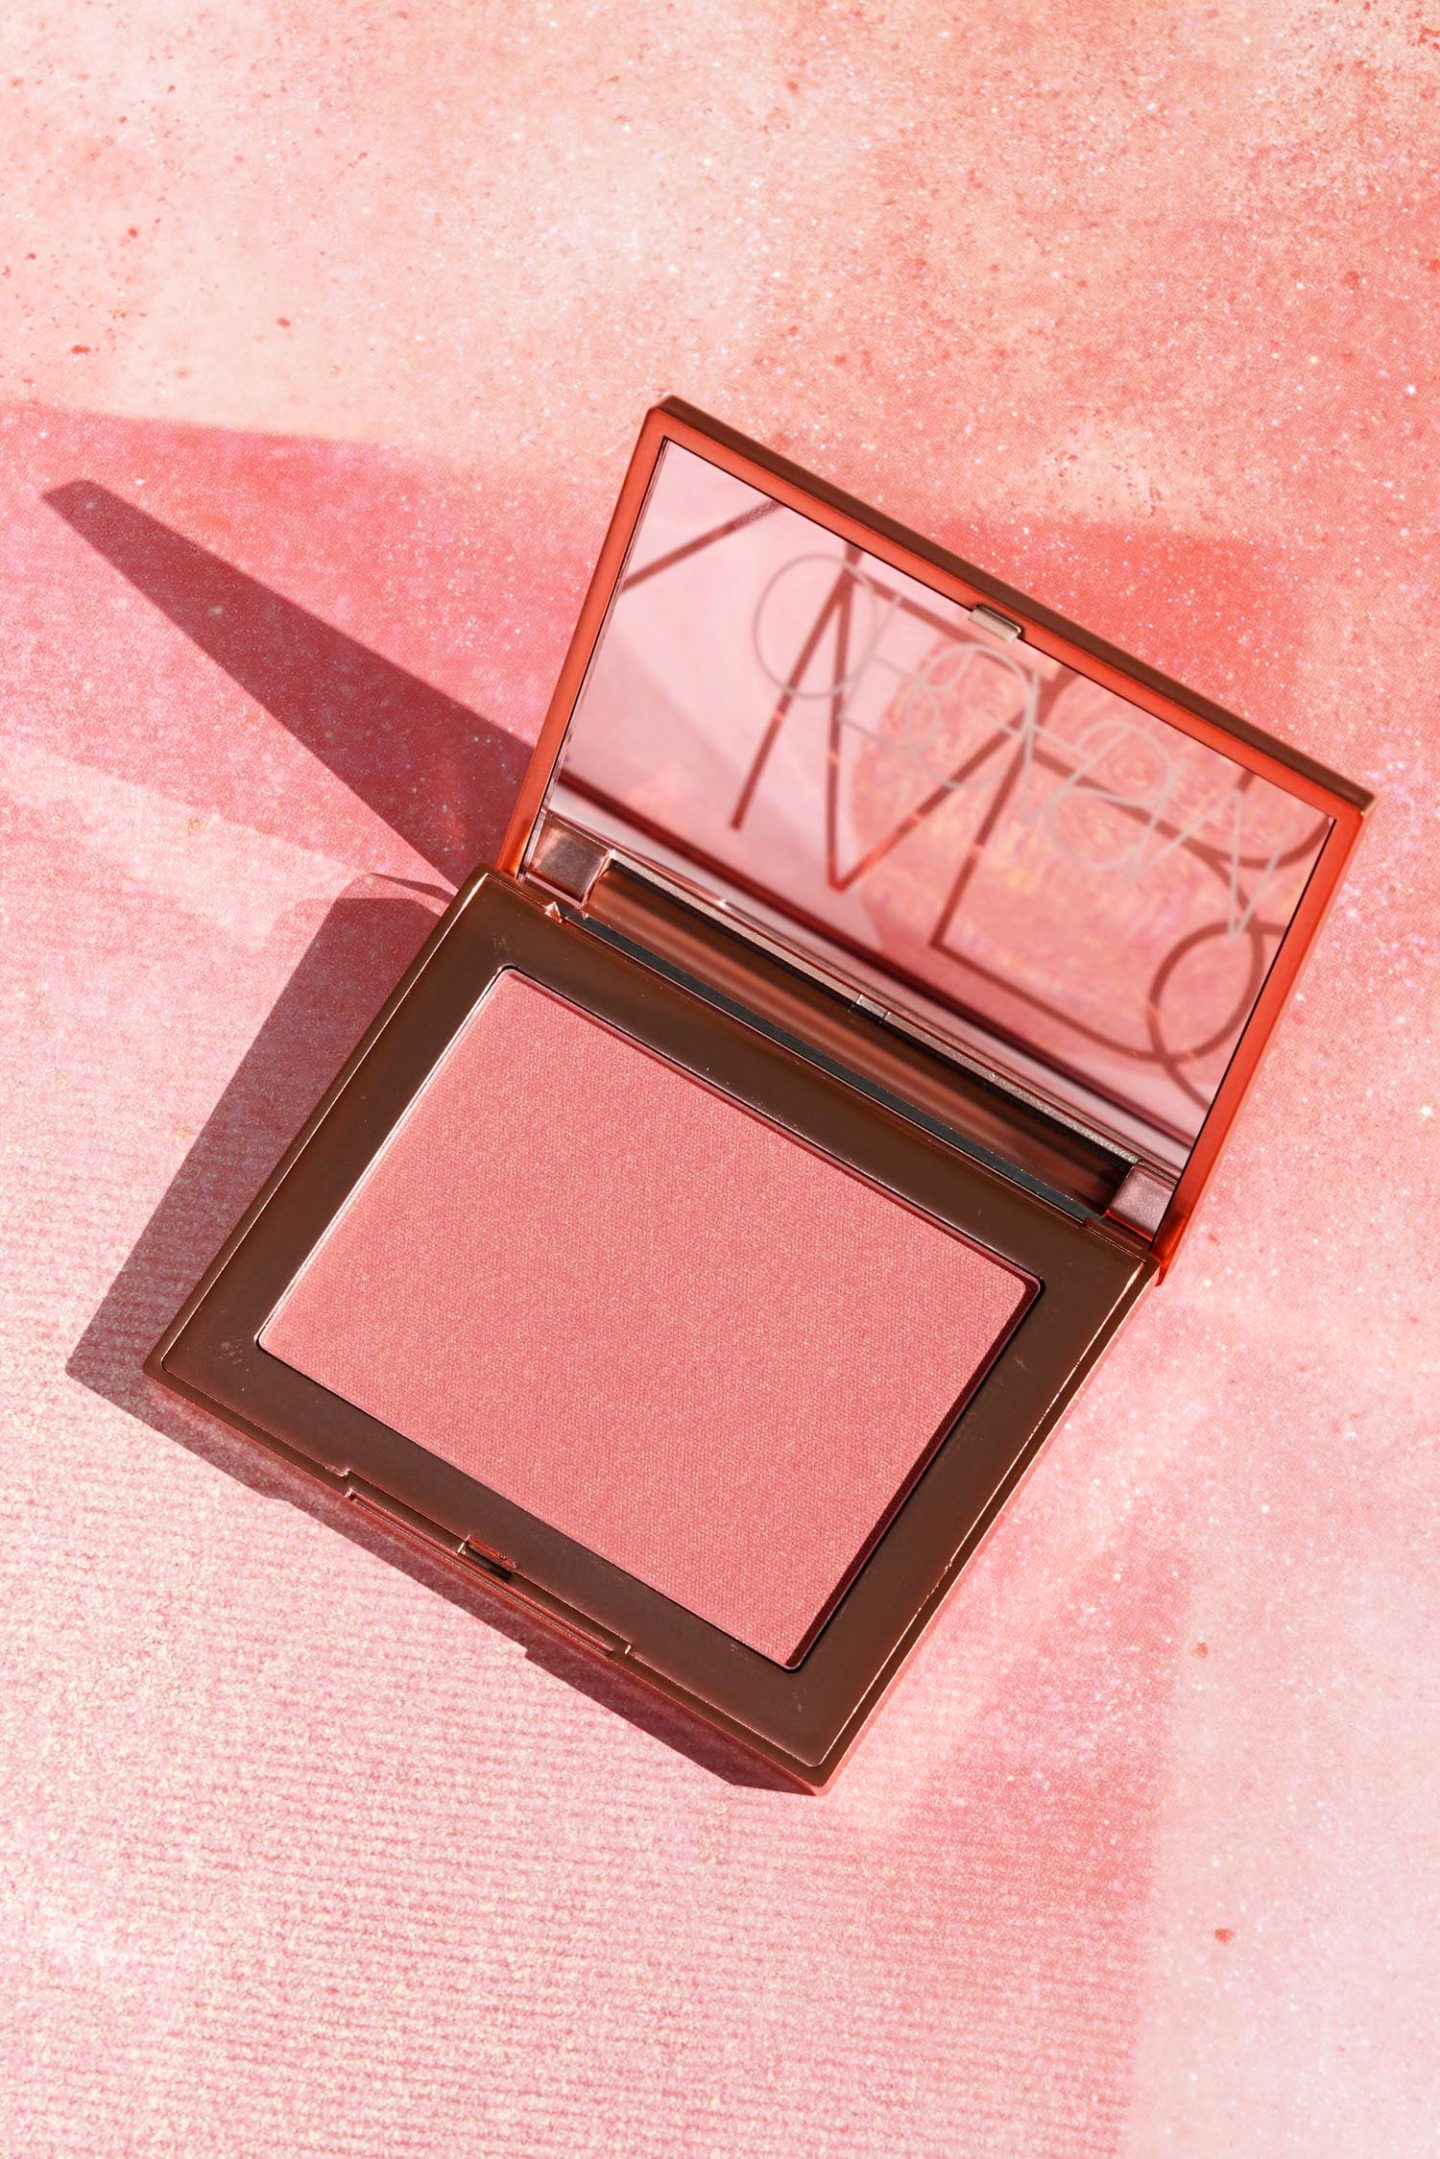 NARS Orgasm Blush 2019 Review and swatches | Le look book beauté